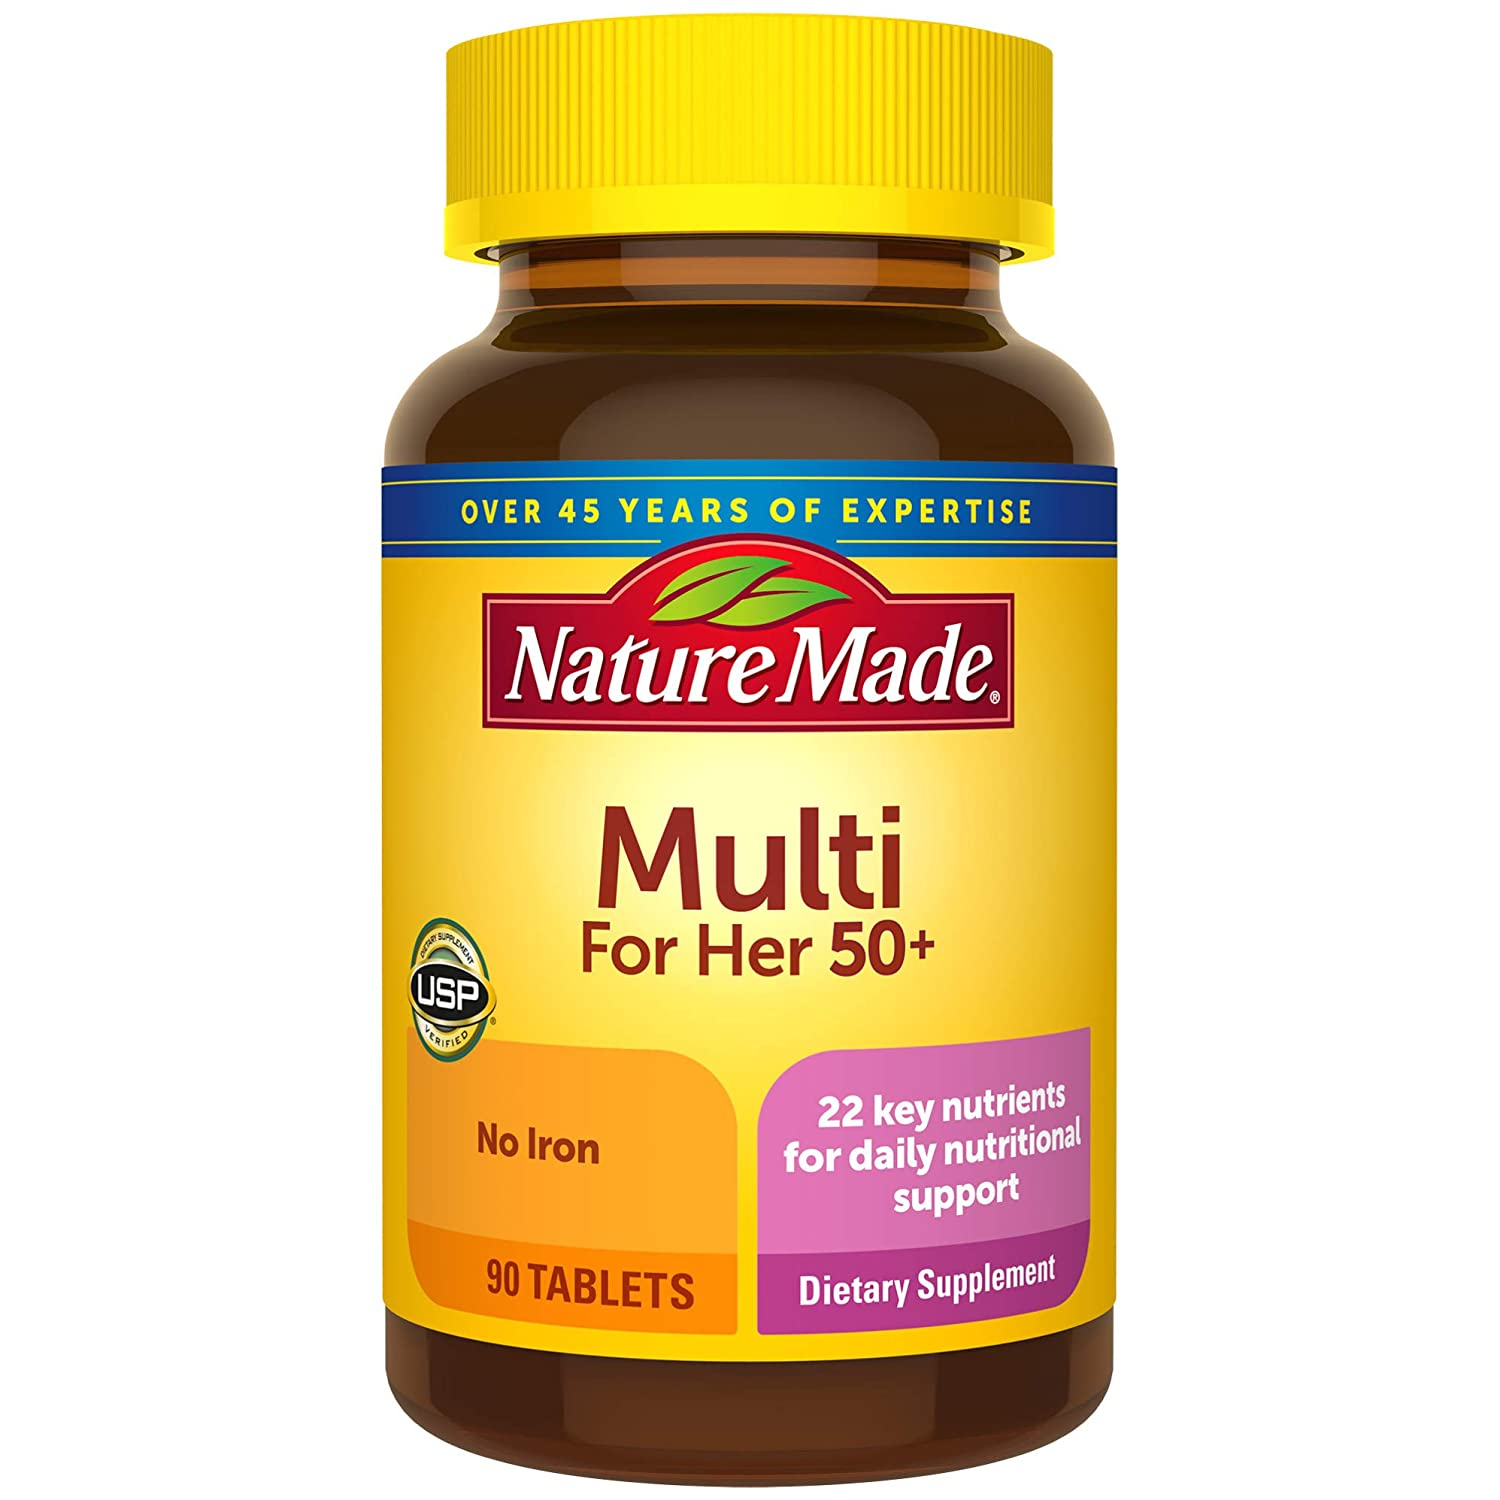 Nature Made Women's Multivitamin 50+ Tablets, 90 Count for Daily Nutritional Support